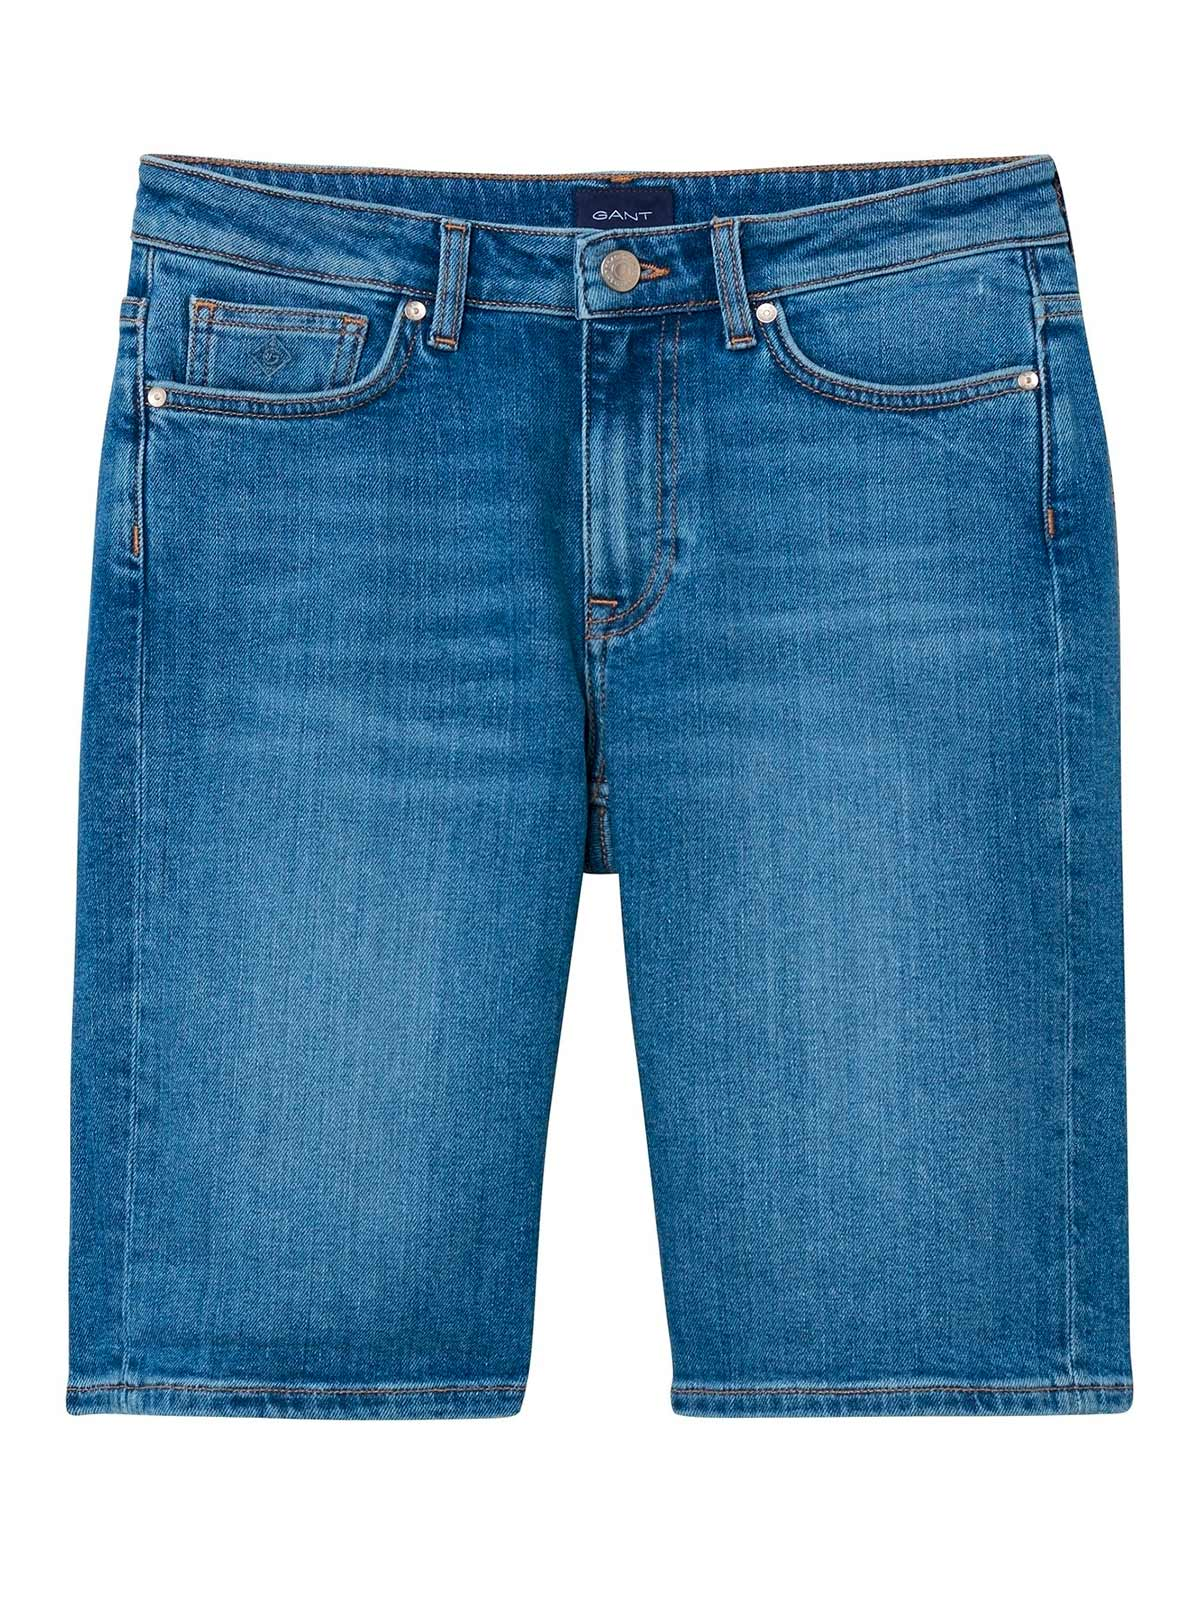 Picture of GANT | Bermuda O1. BLUE DENIM SHORTS